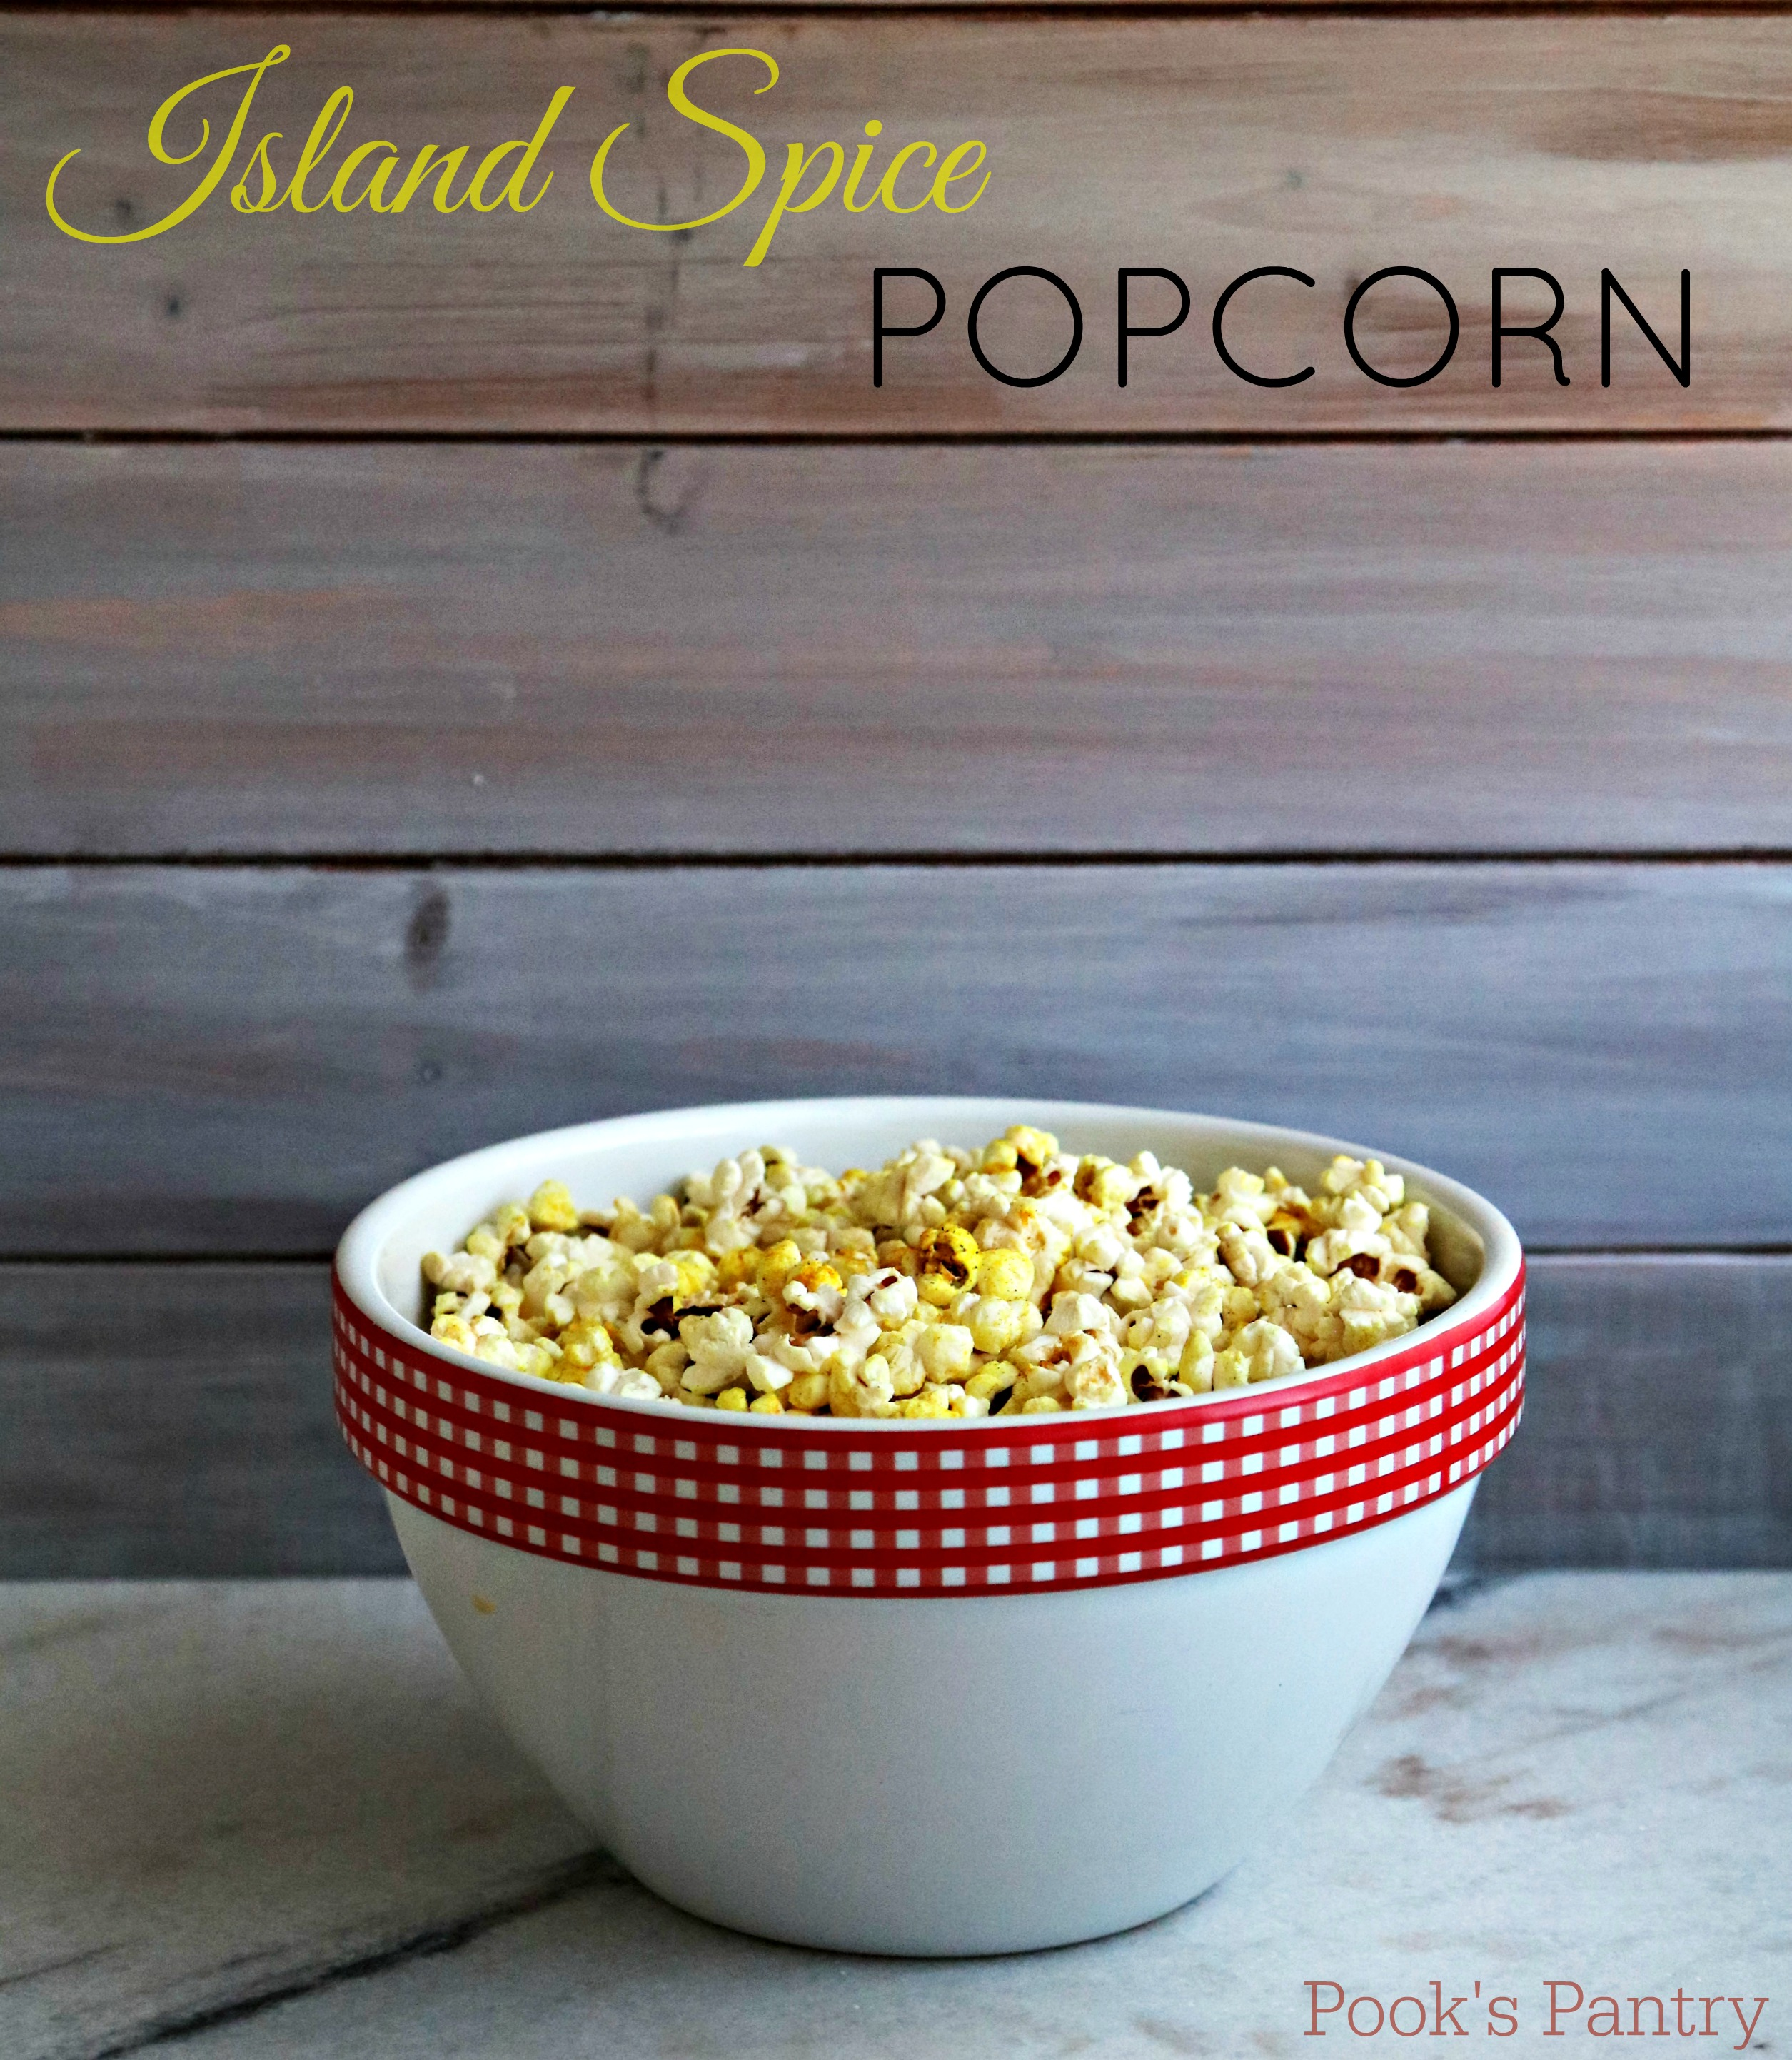 coconut oil popcorn in white bowl with red checkered rim